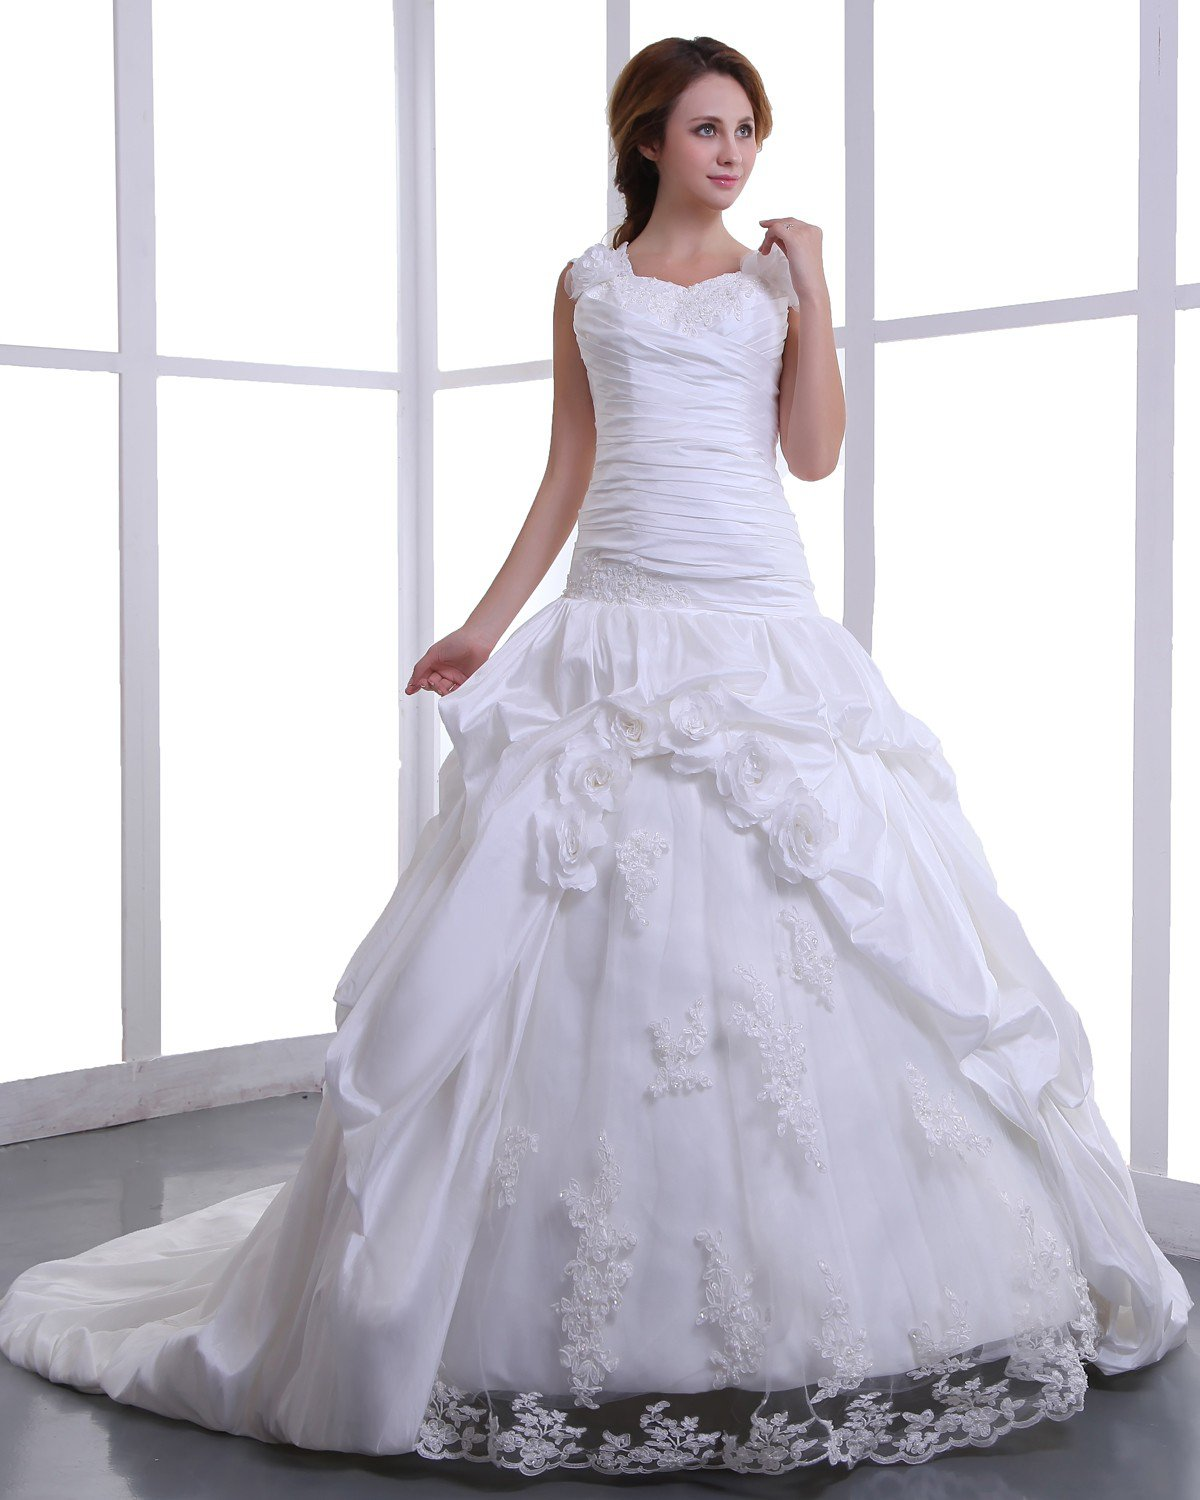 Square Taffeta Embroidery Bead Cathedral Train A-Line Wedding Dress 170001